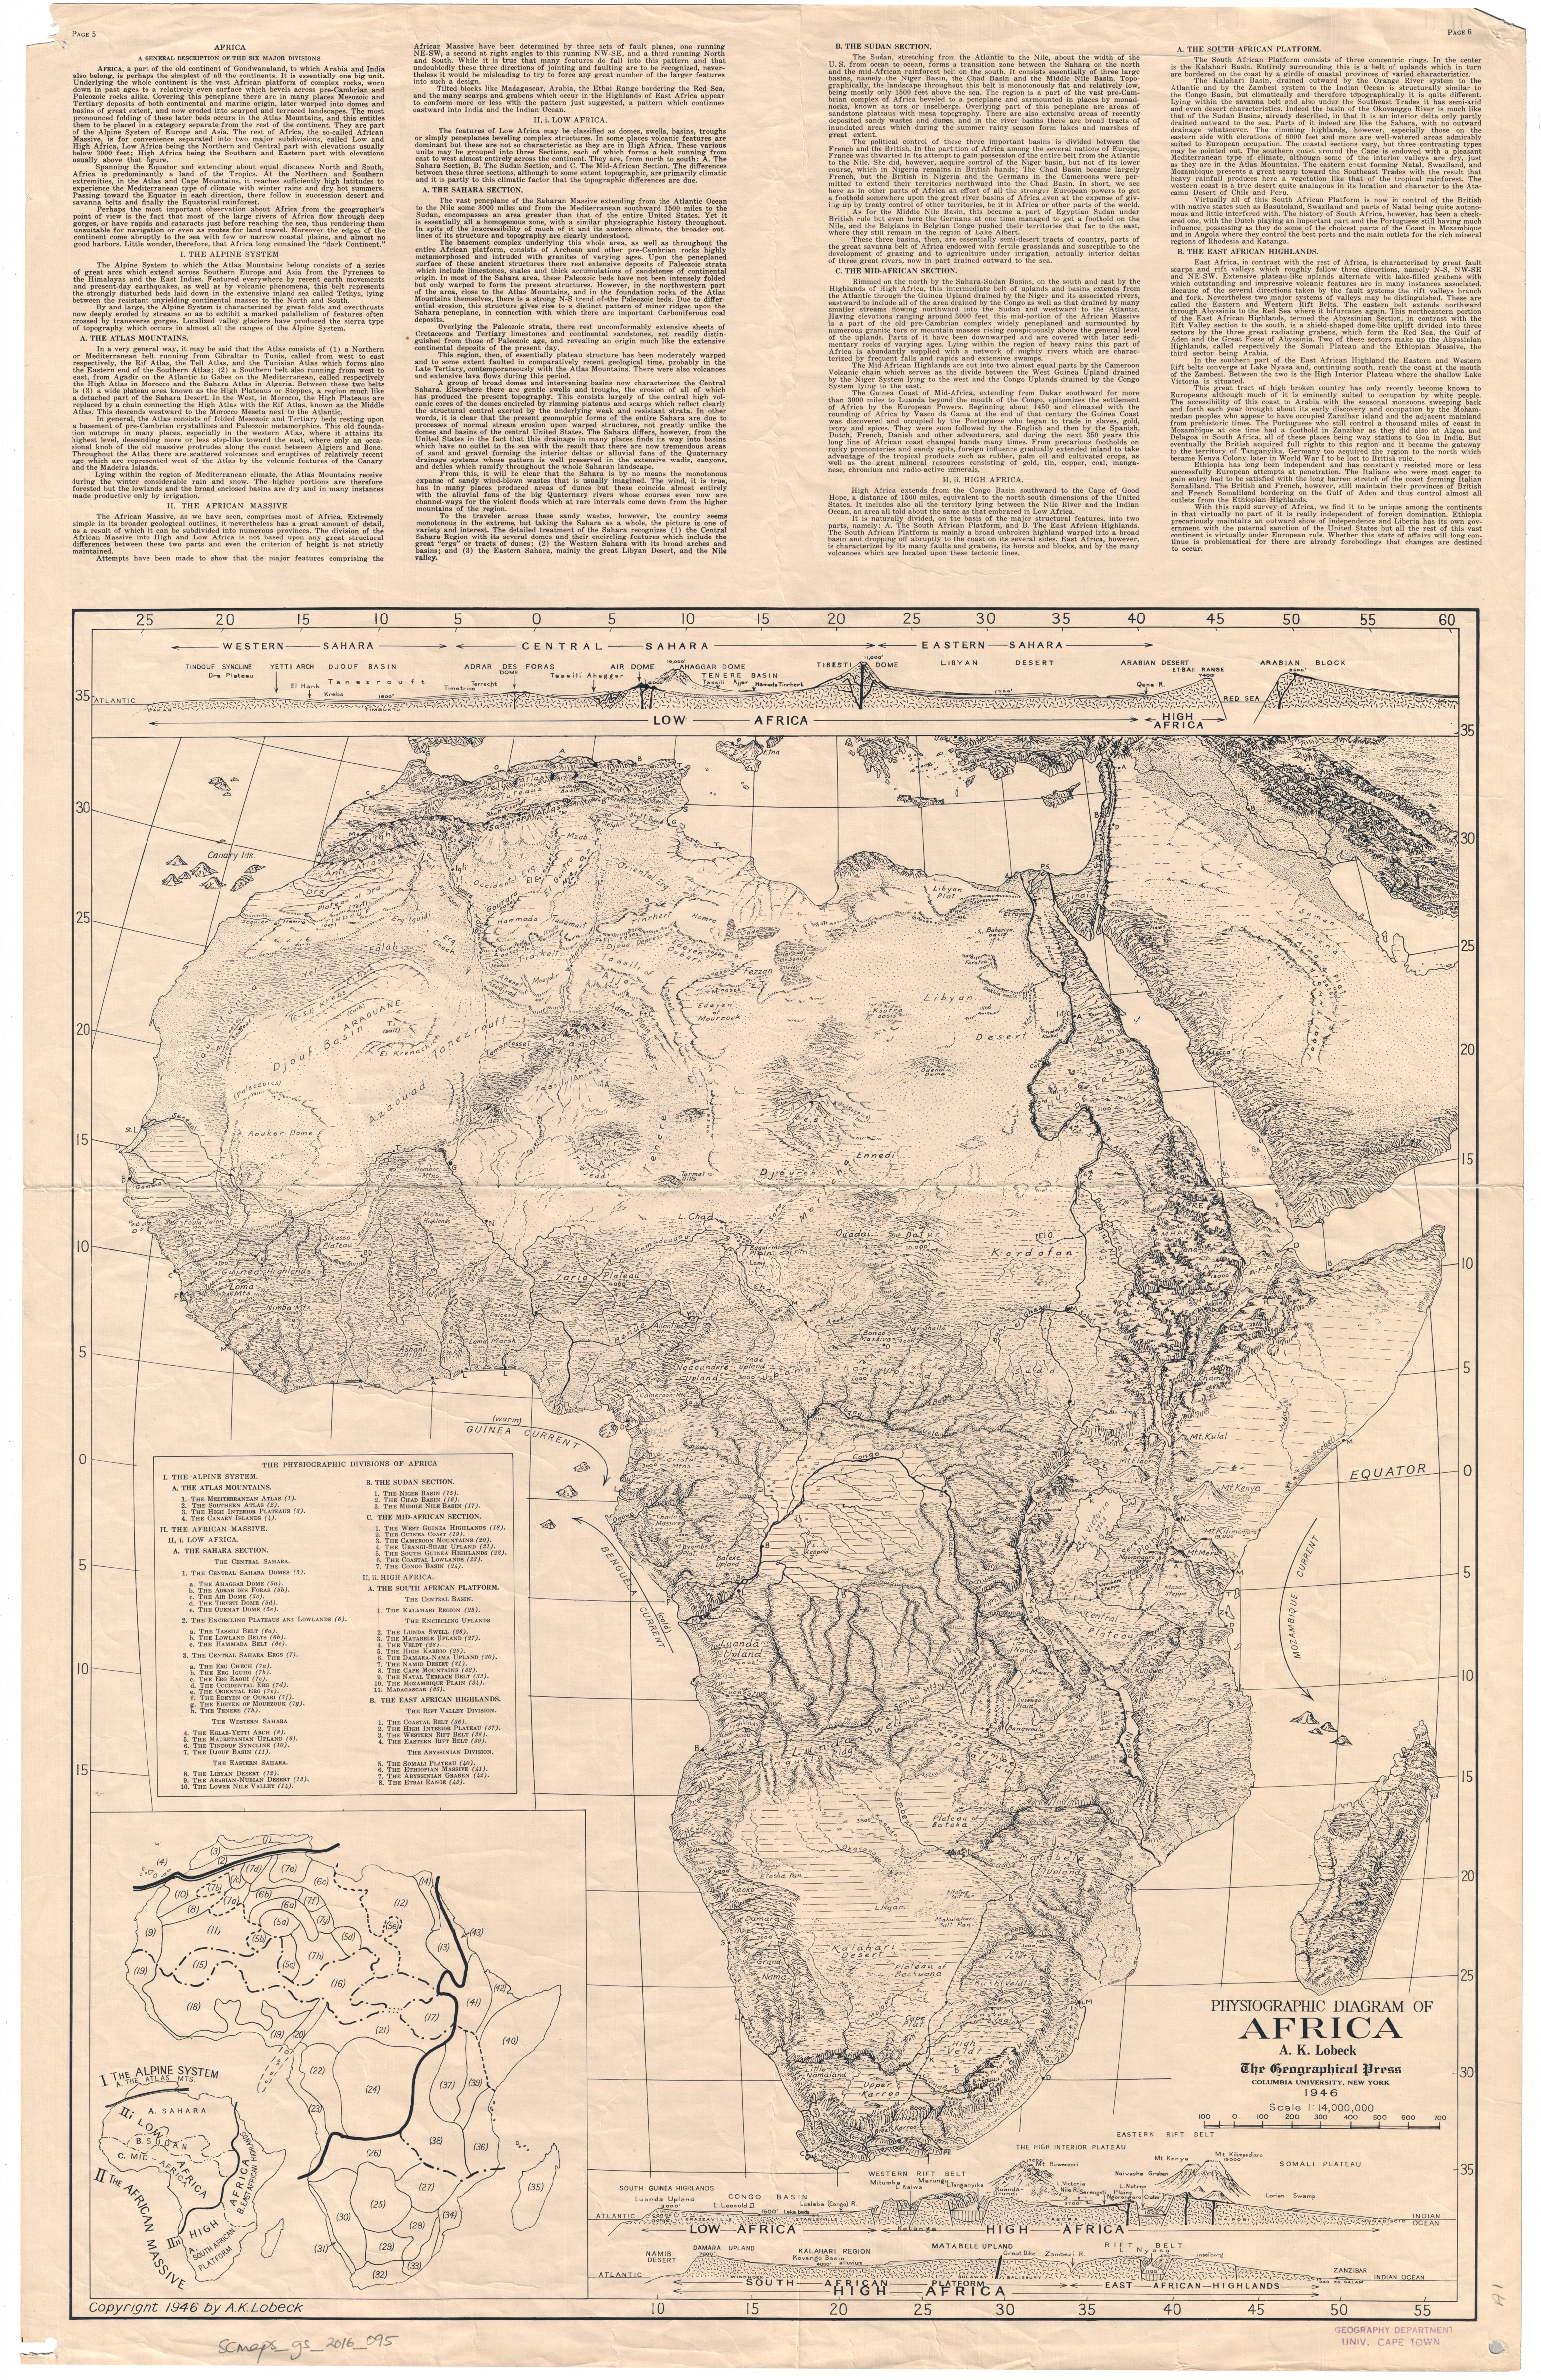 Physiographic Diagram of Africa | UCT Libraries Digital Collections